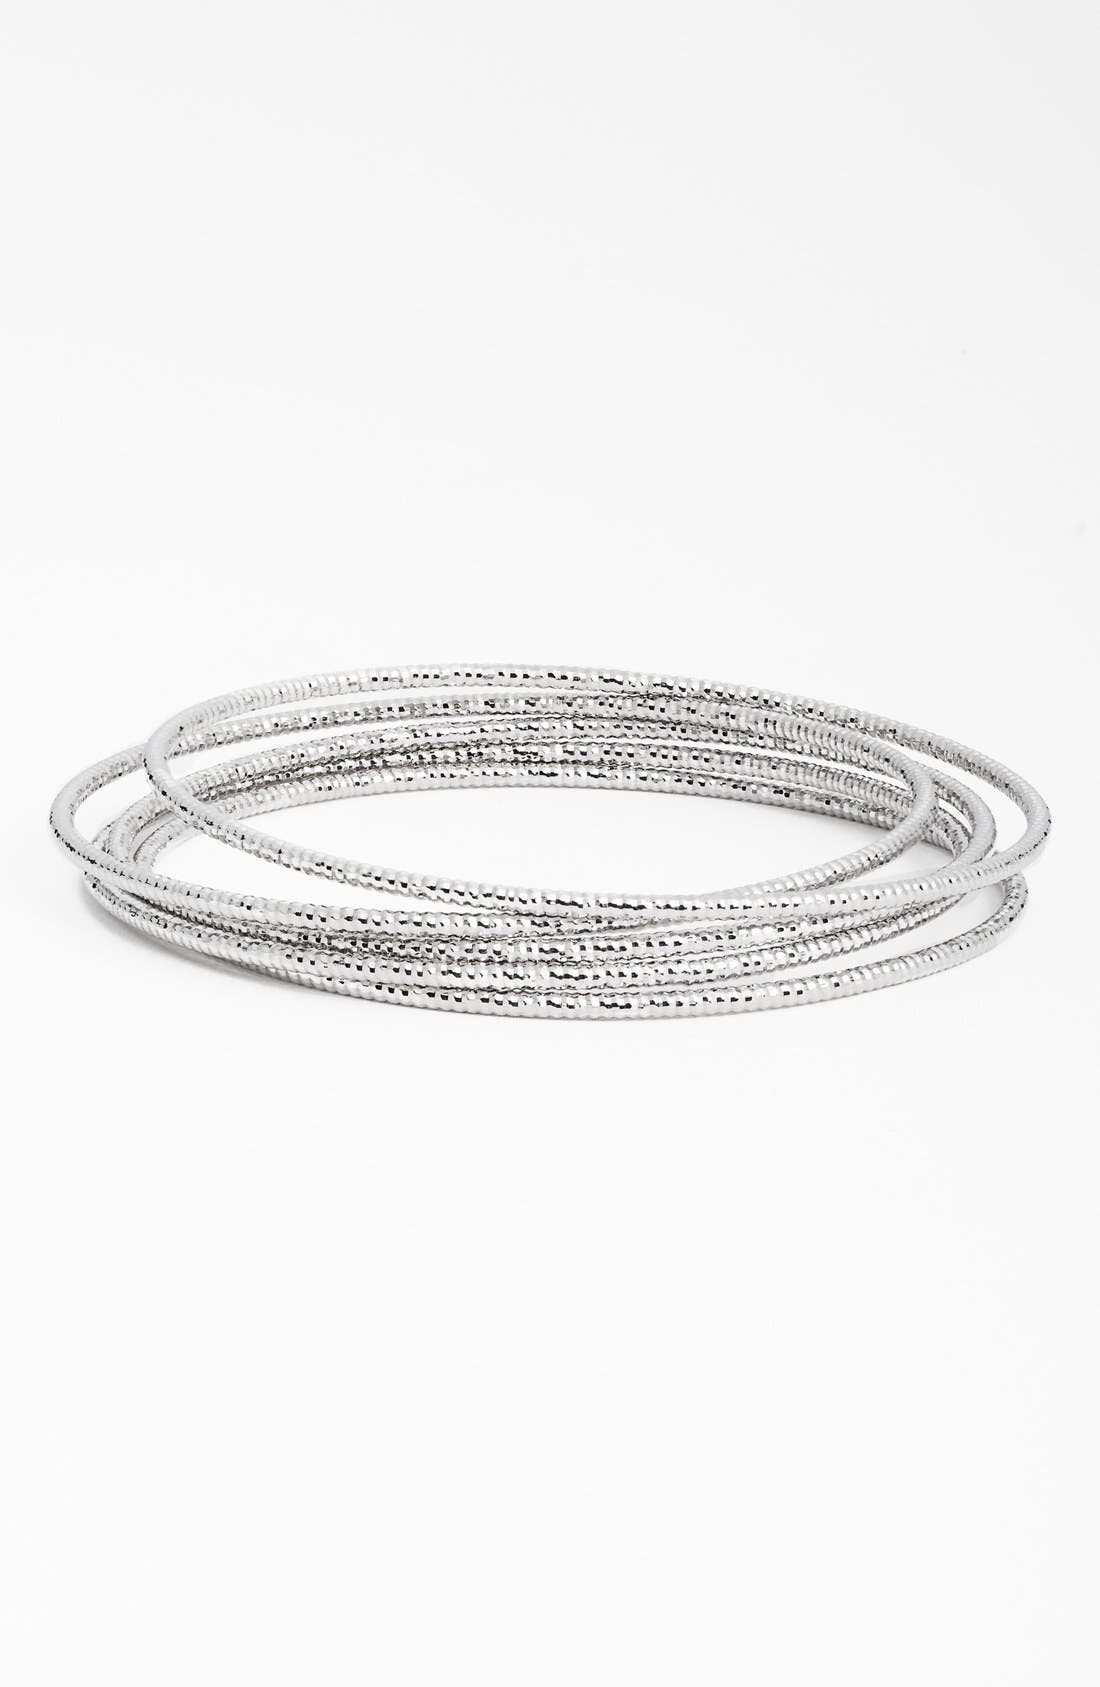 NORDSTROM Textured Bangles, Main, color, 040